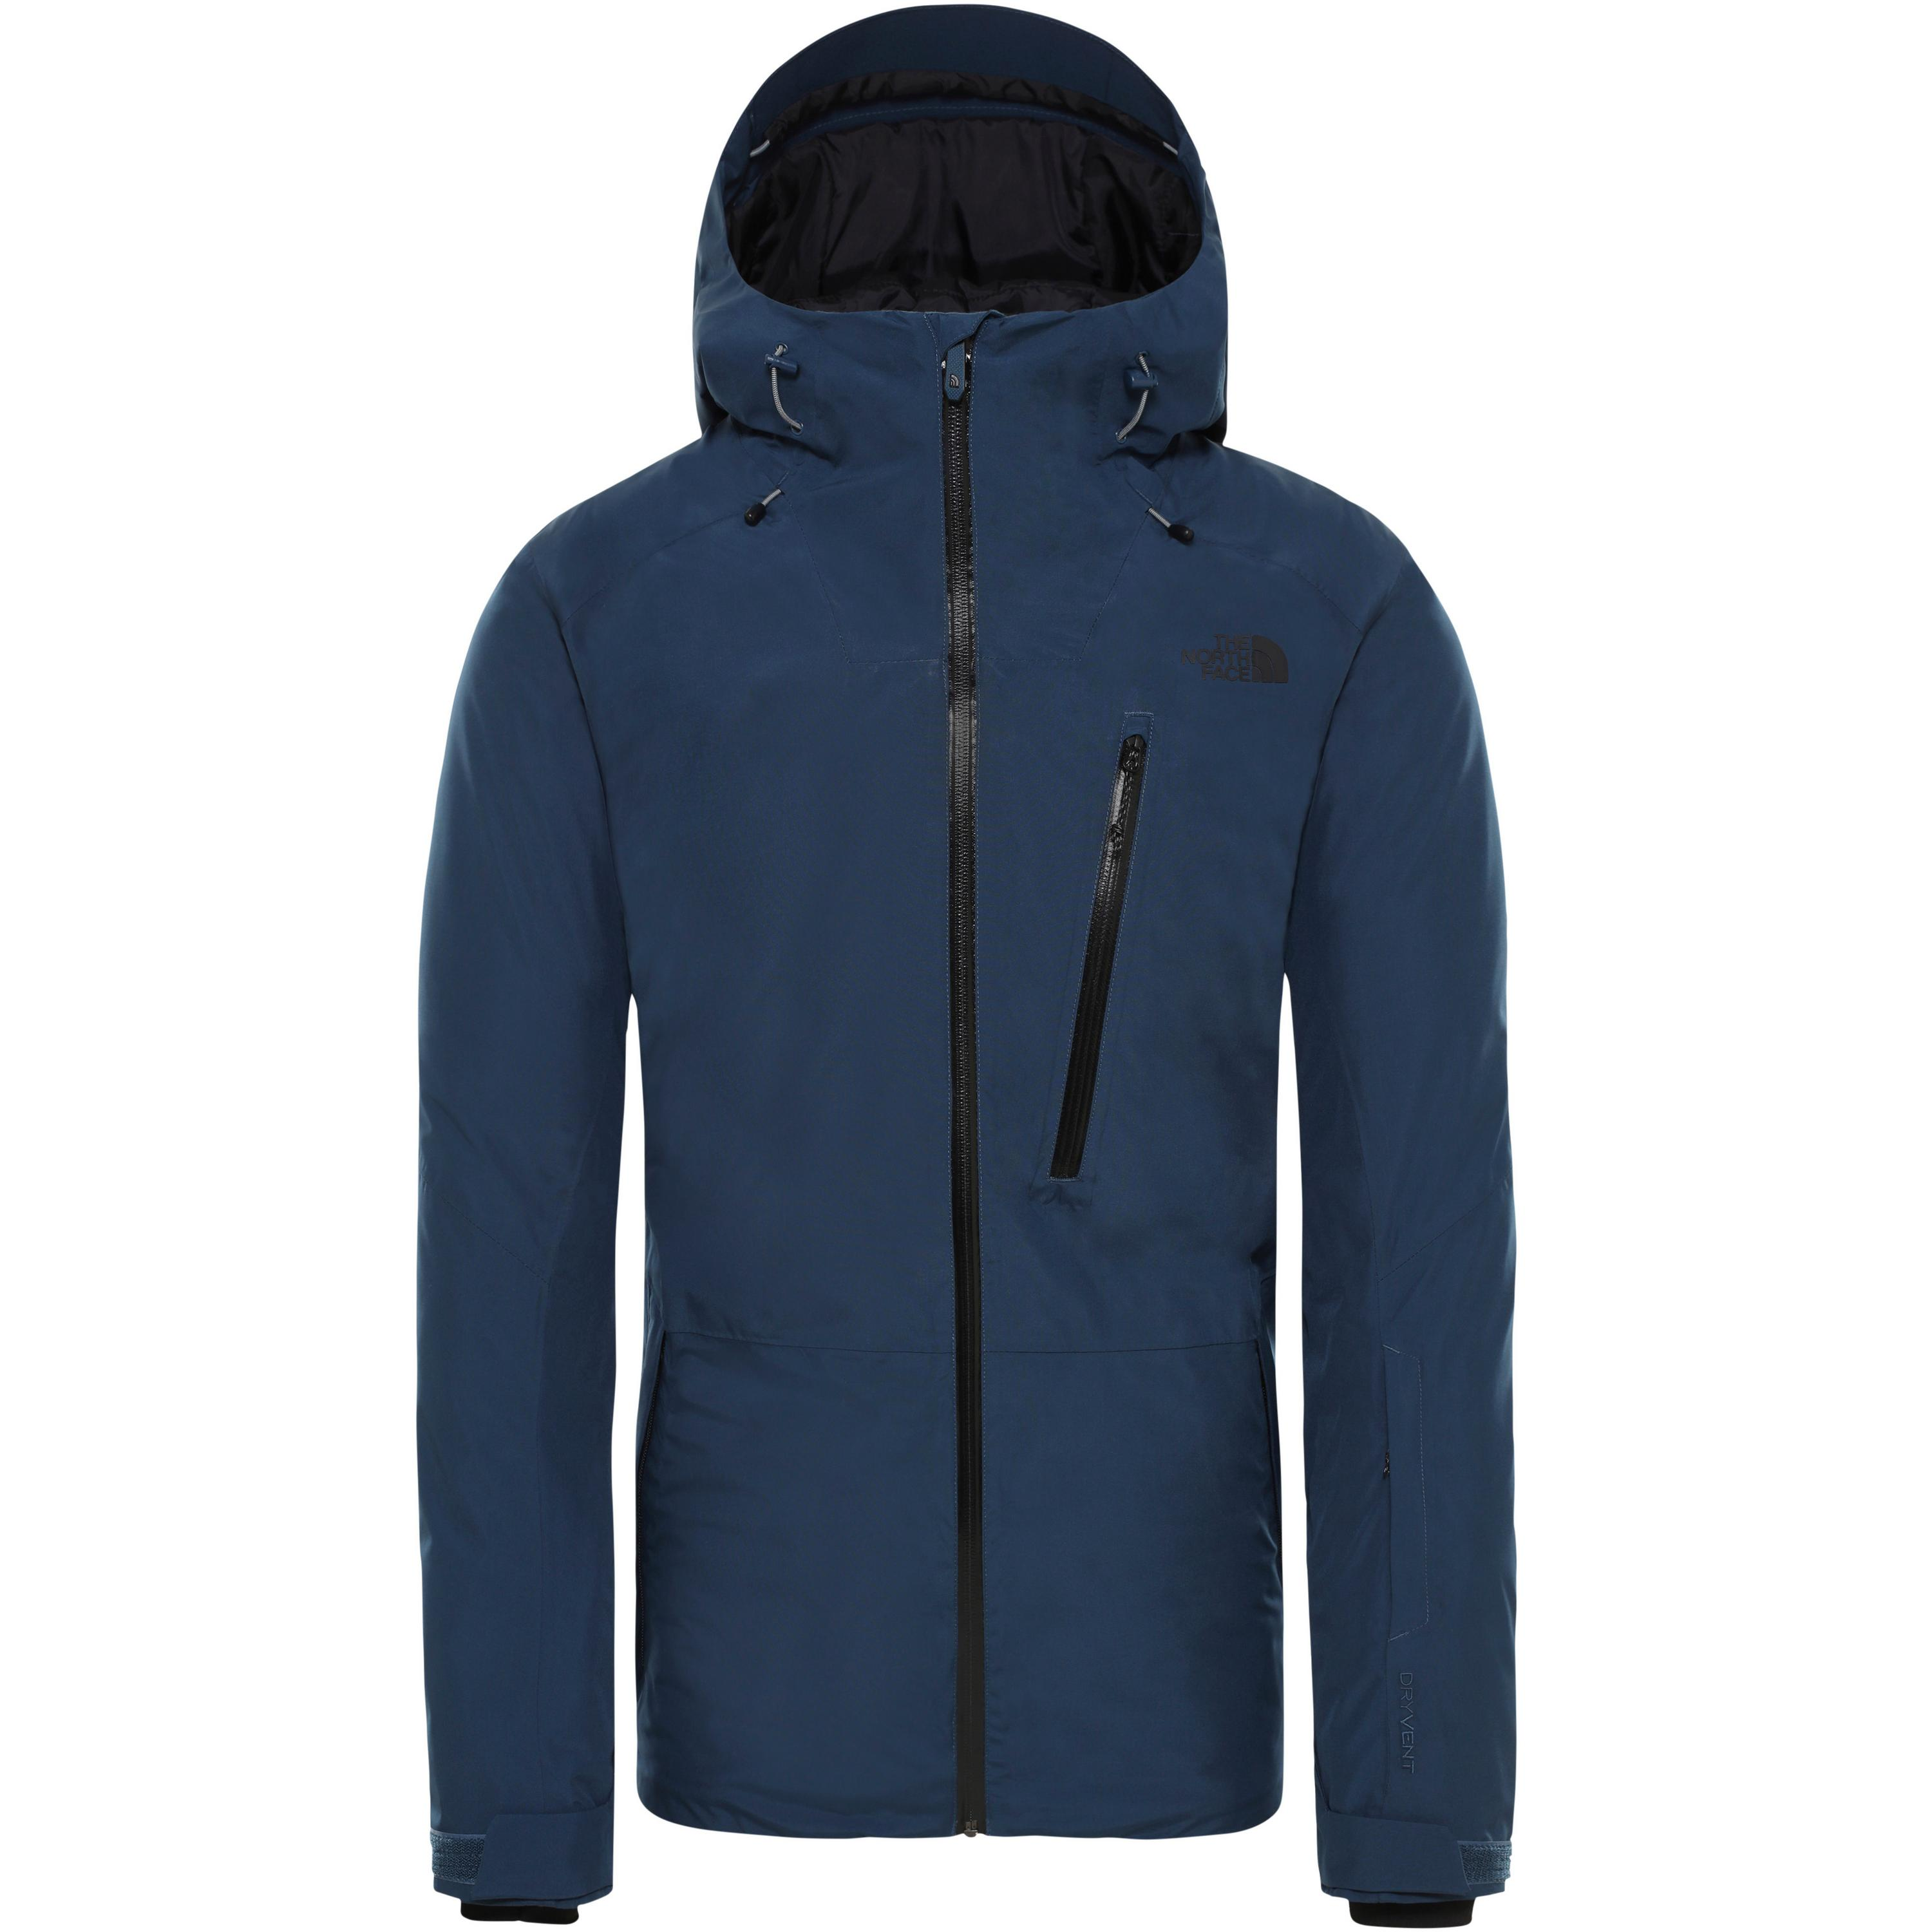 The North Face Descendit Skijacke Herren (blau)